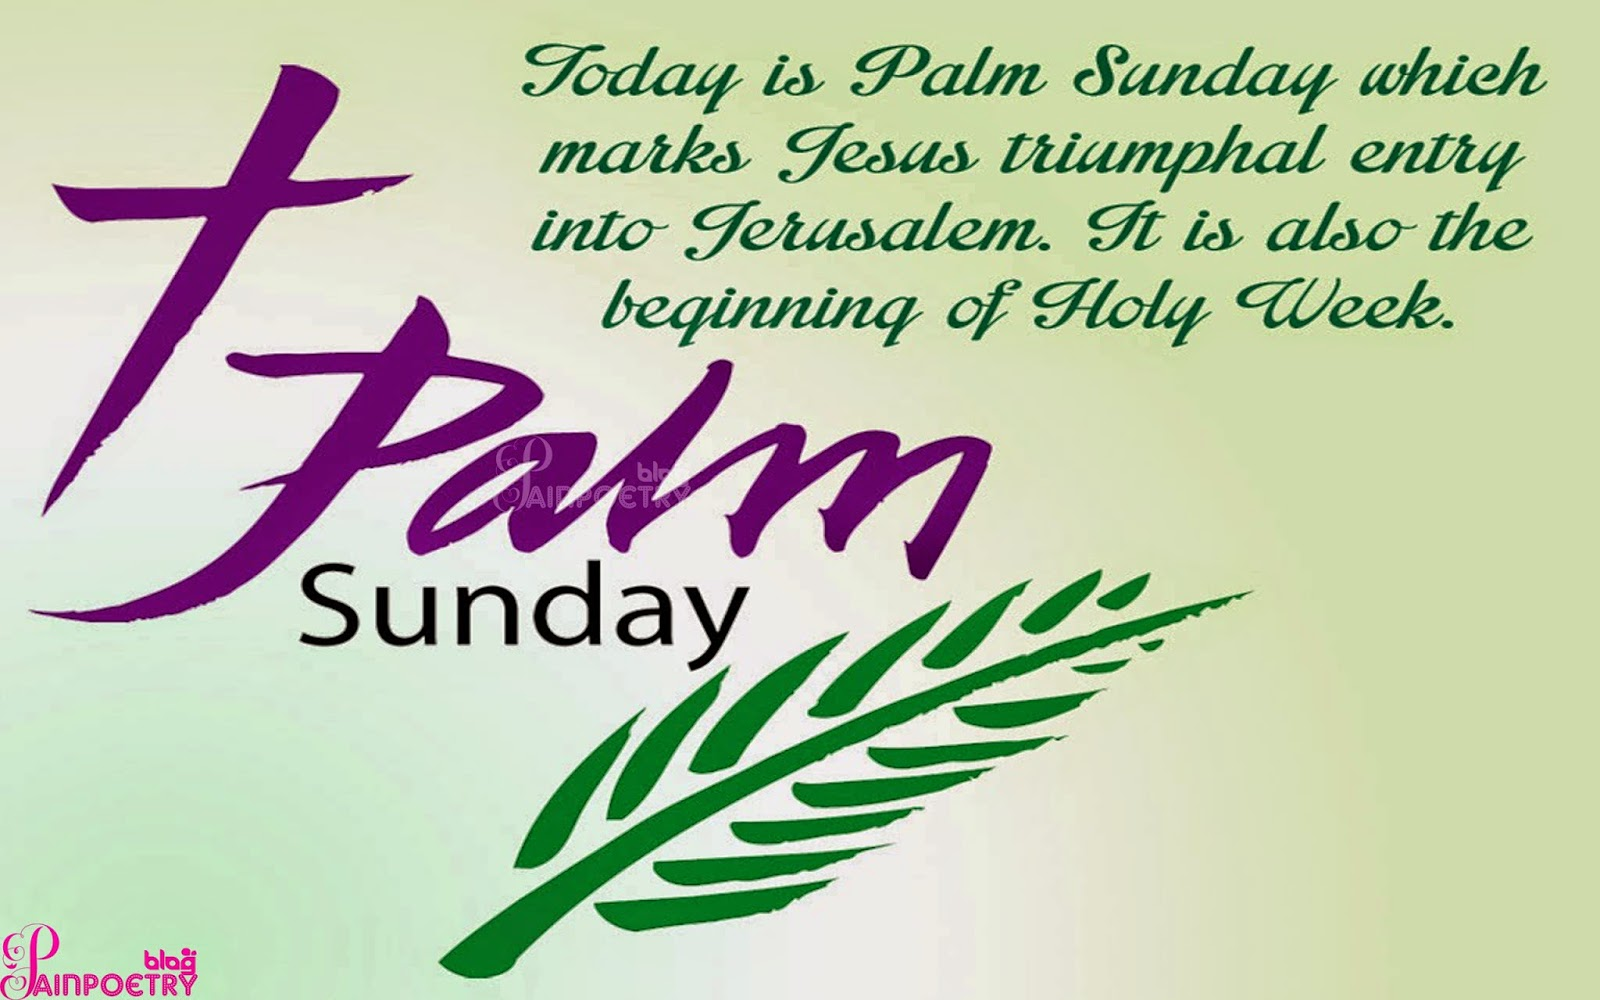 Palm-Sunday-Greeting-Wallpaper-HD-Wide